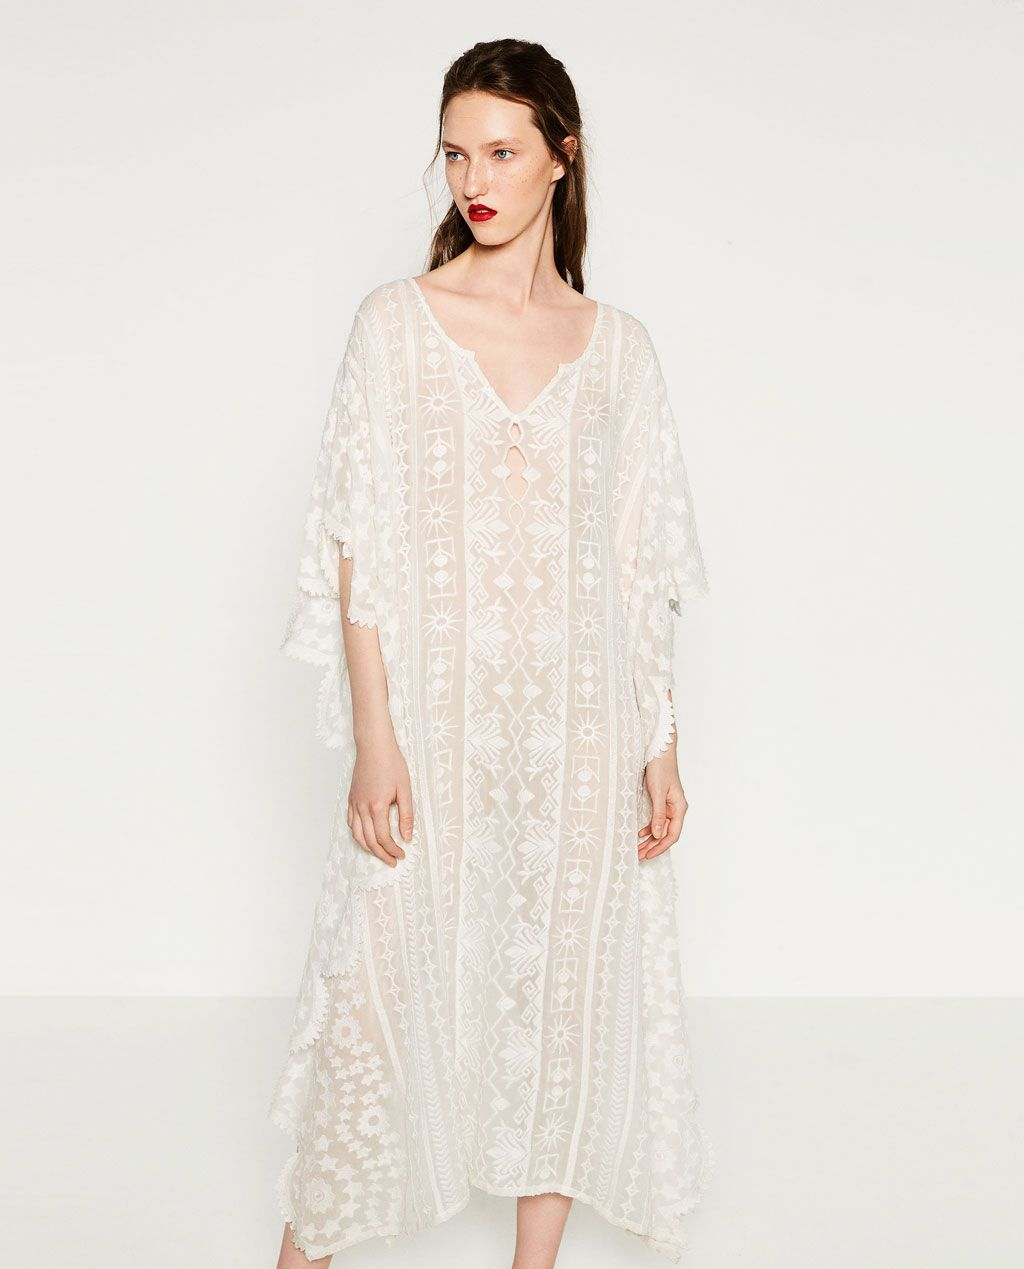 34ab11d0a5d5 Image 2 of EMBROIDERED KAFTAN from Zara | Clothes | Fashion dresses ...